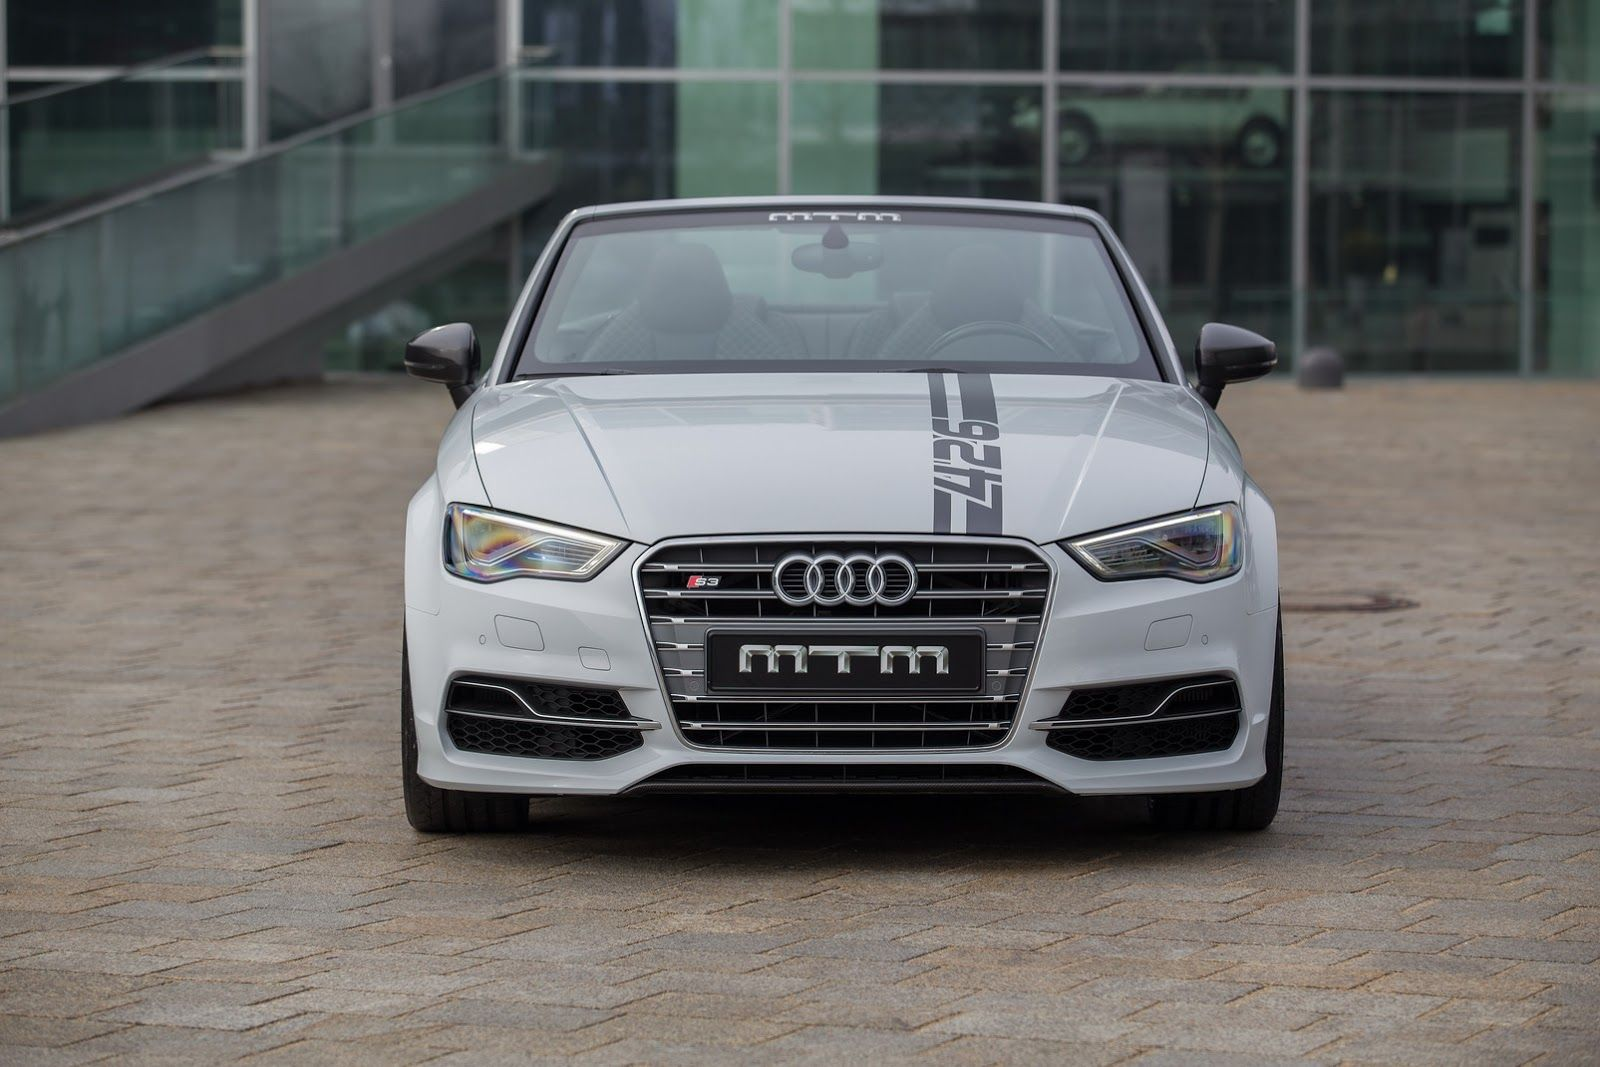 Geneva Show Bound Mtm Audi S3 Cabrio Has 426ps And Costs Nearly 100k Carscoops Audi Audi A3 Bmw